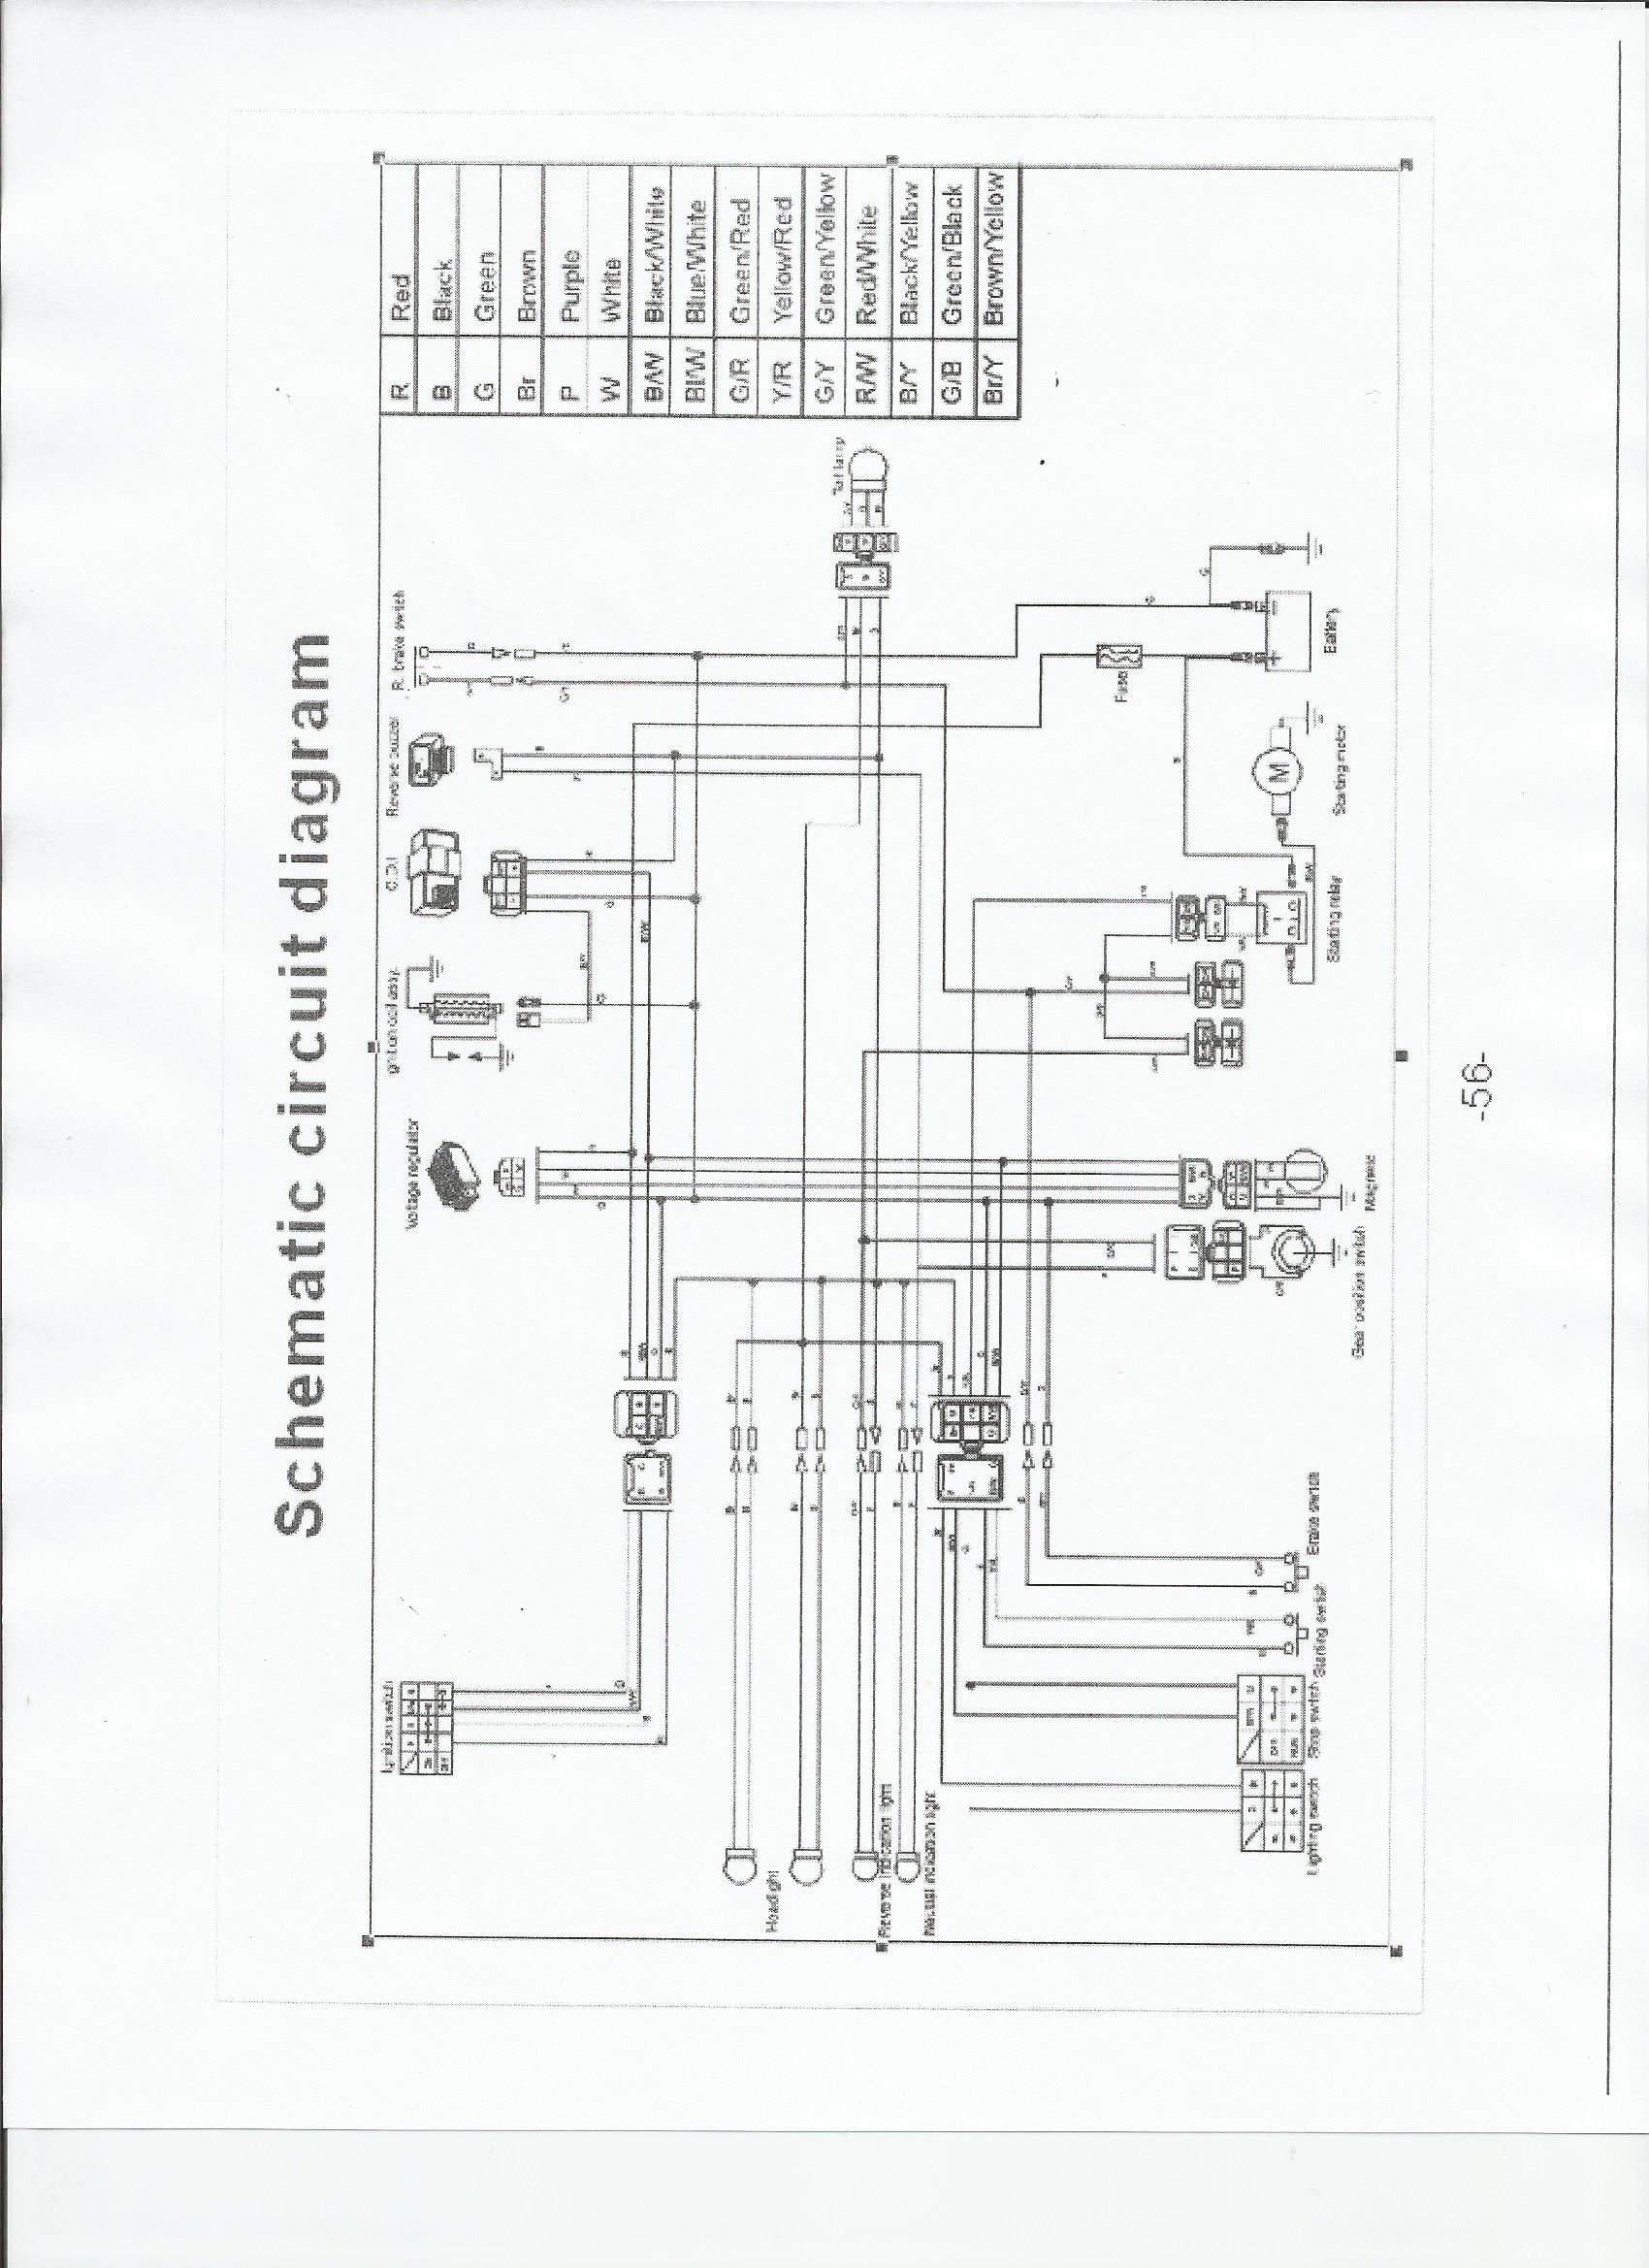 Taotao mini and youth atv wiring schematic familygokarts support tao tao wiring schematicg swarovskicordoba Images